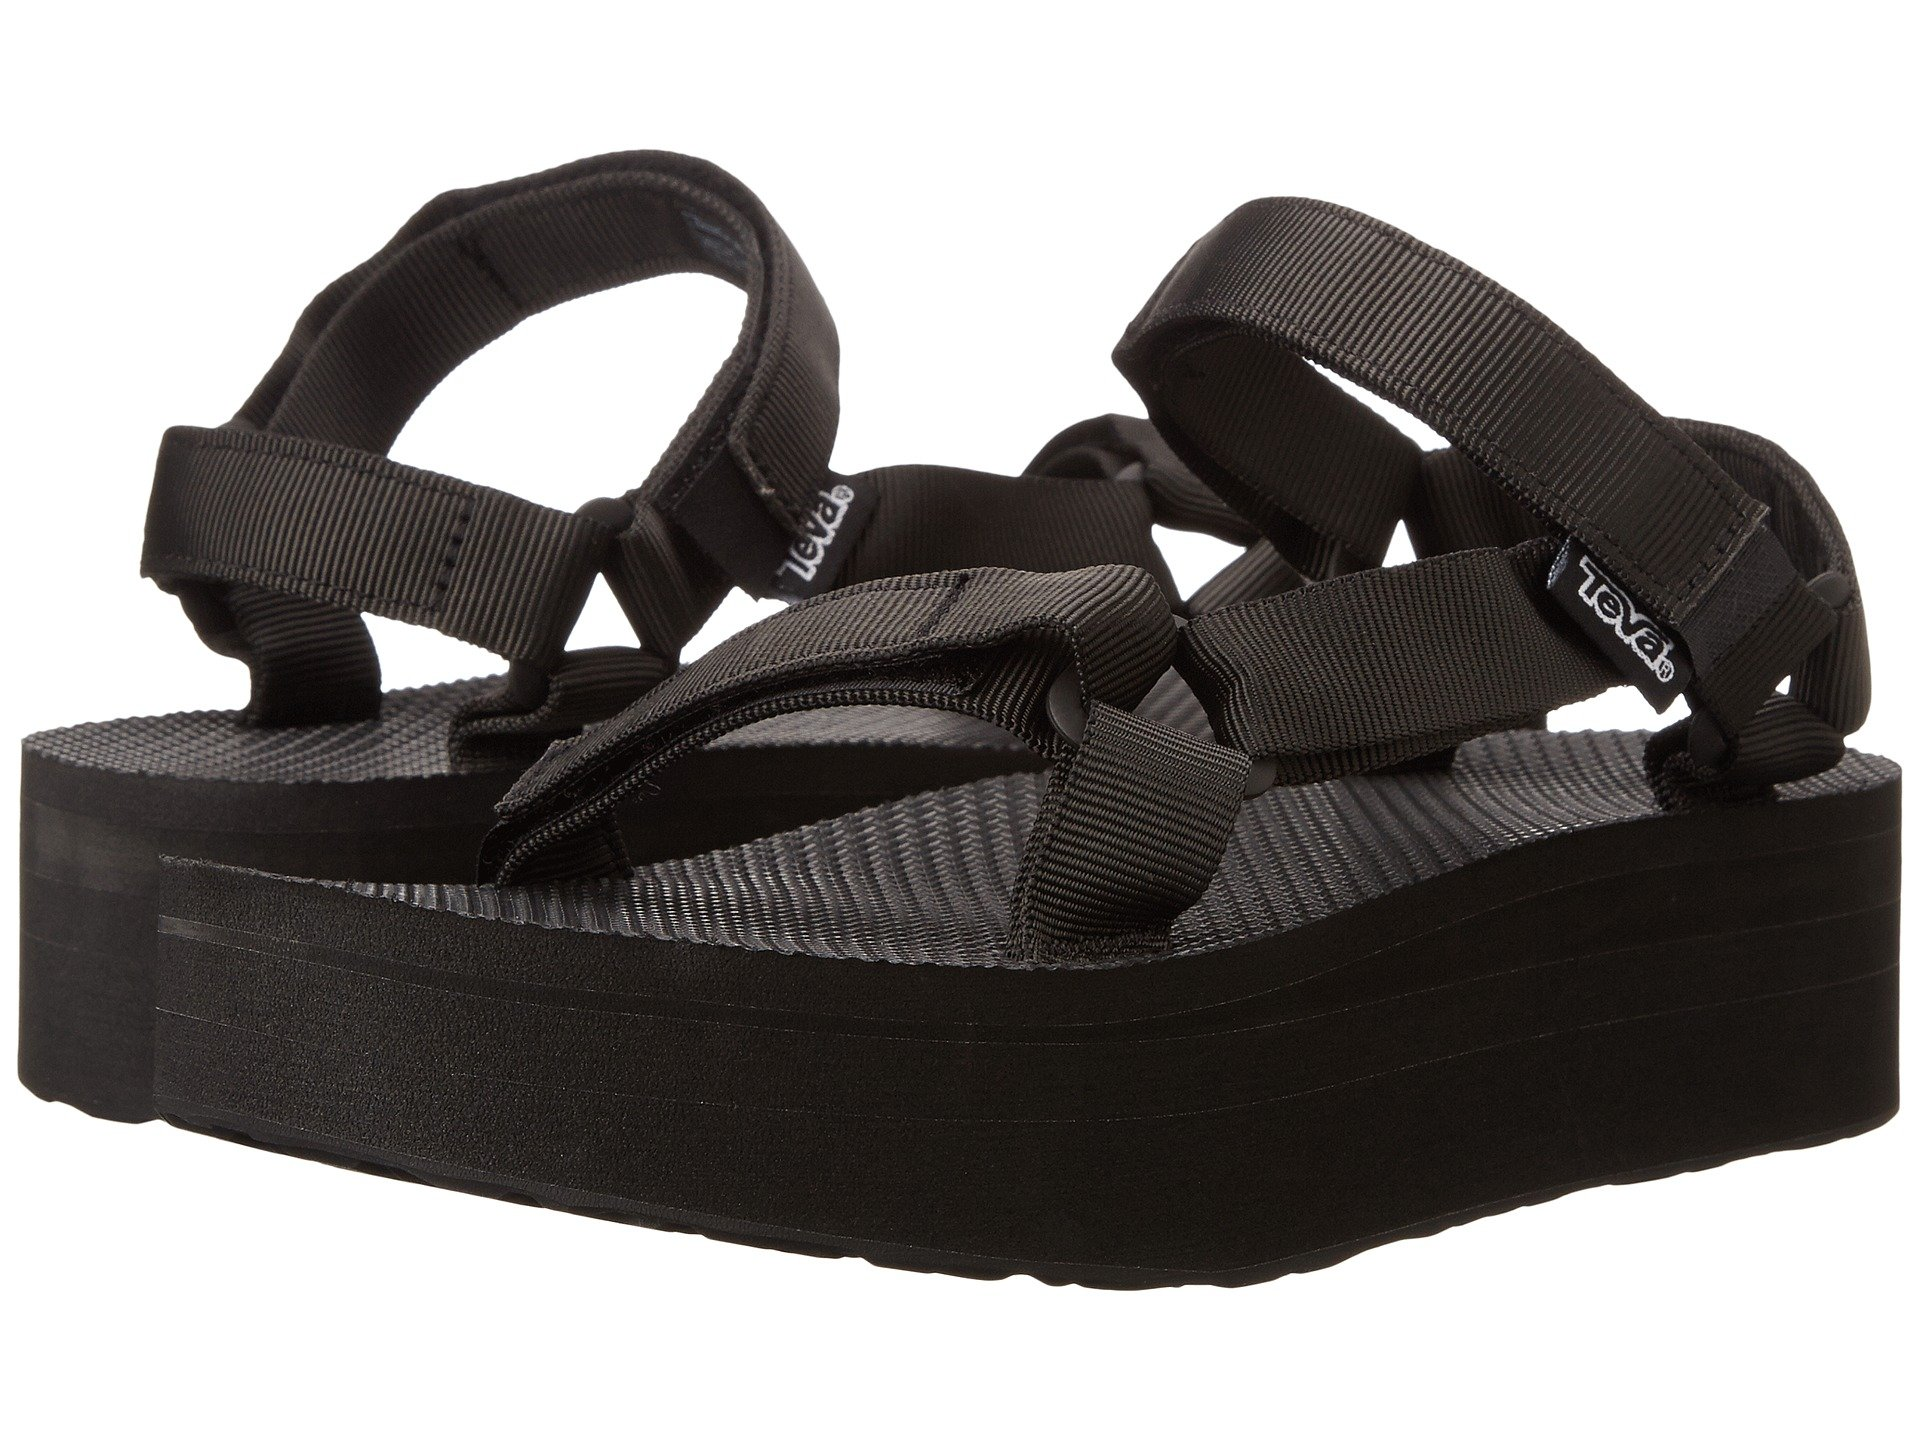 559ef3e458548 Women s Teva Sandals + FREE SHIPPING